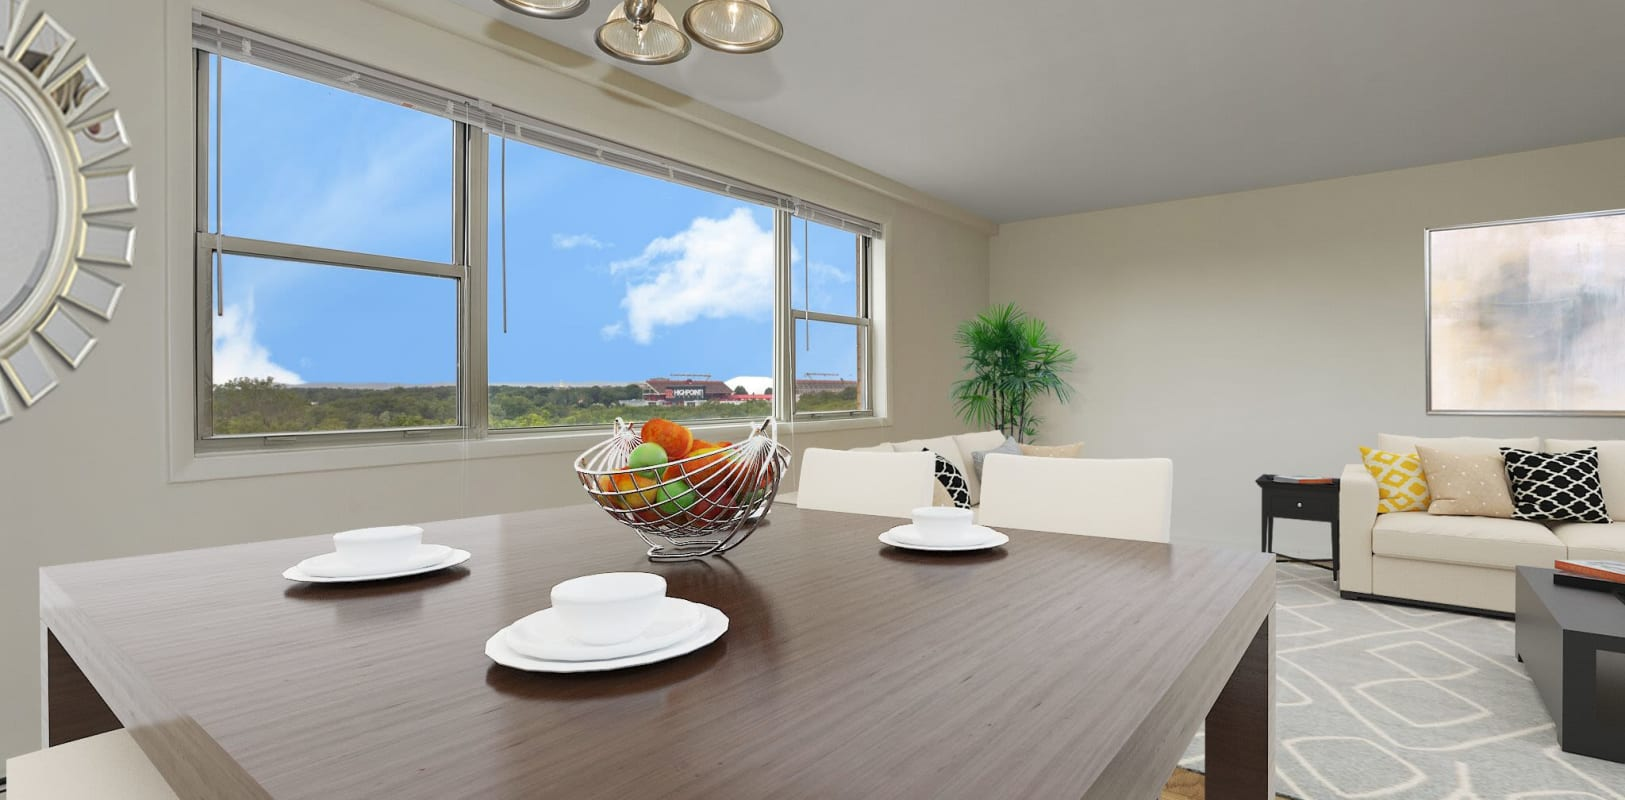 Dining area at 10 Landing Lane in New Brunswick, New Jersey